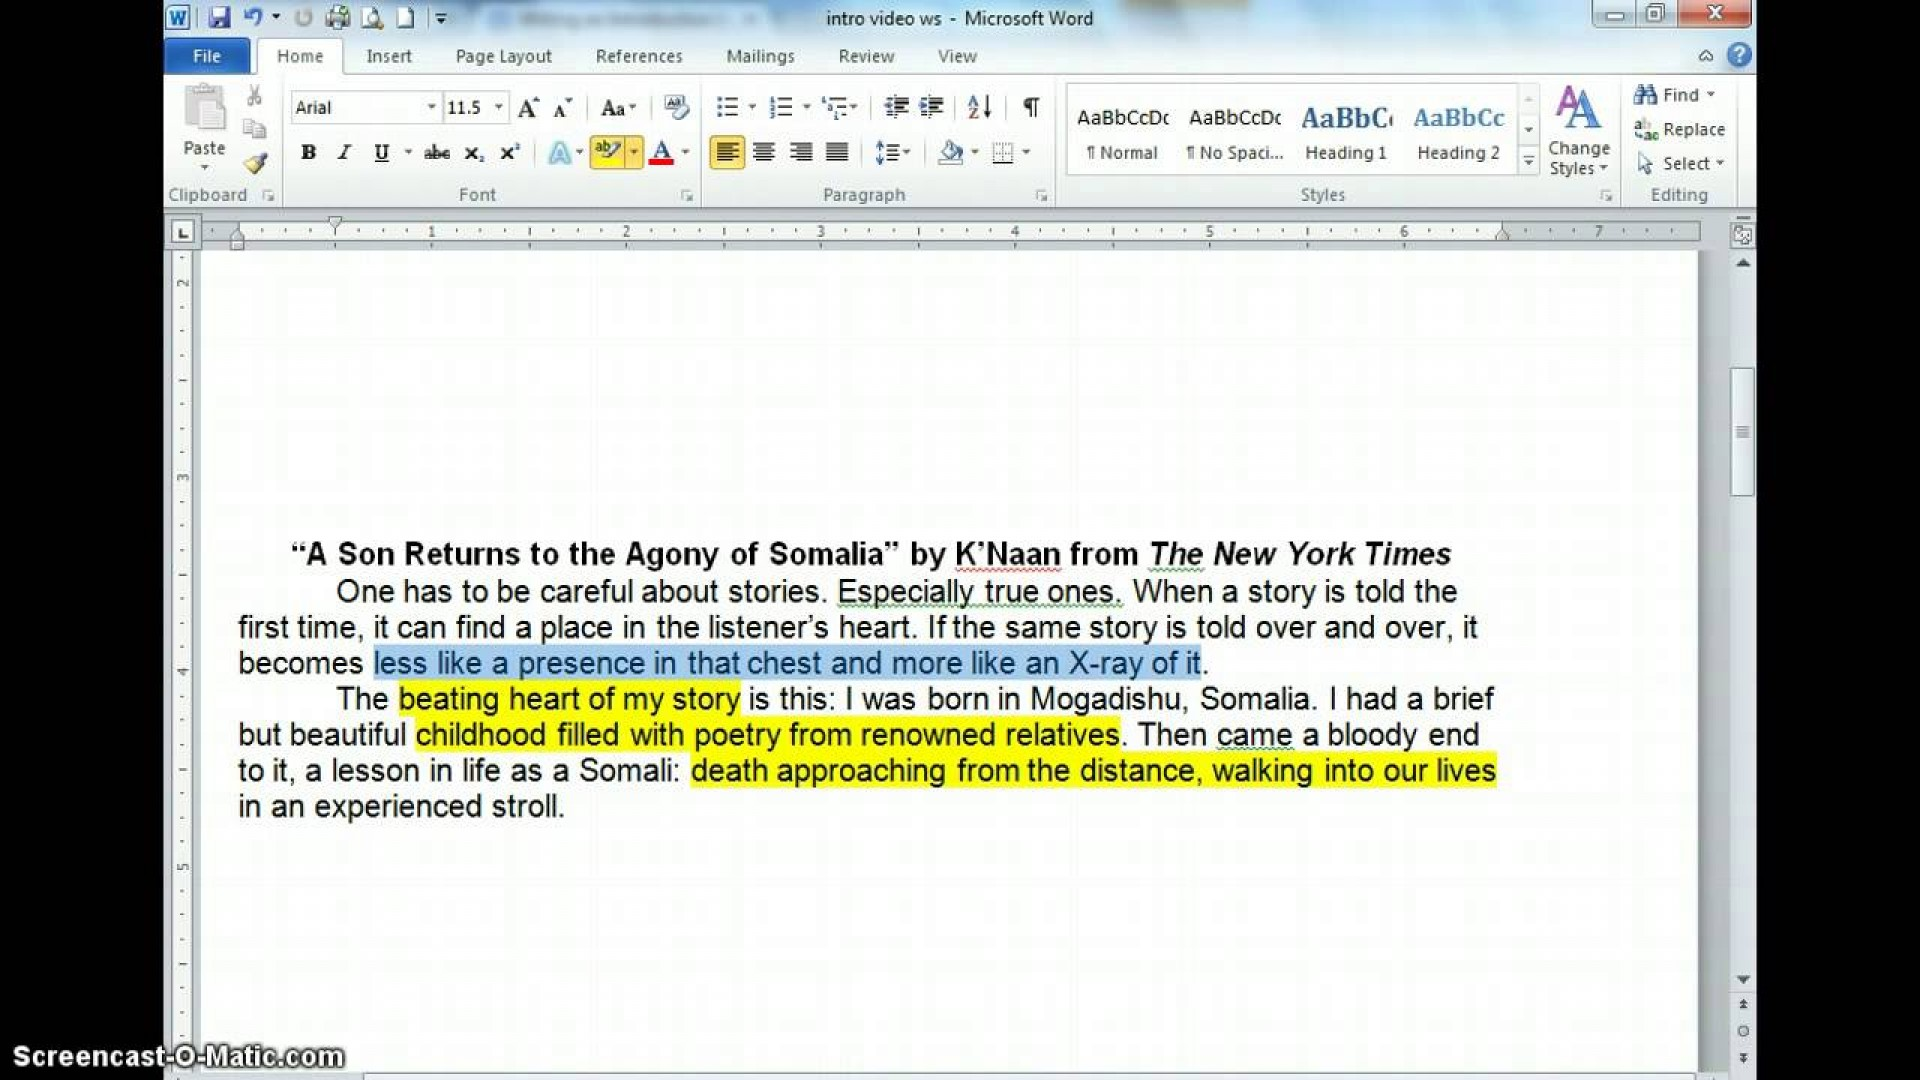 019 Essay Example How To Write An Introduction Paragraph For Best Argumentative About A Book Ppt 1920